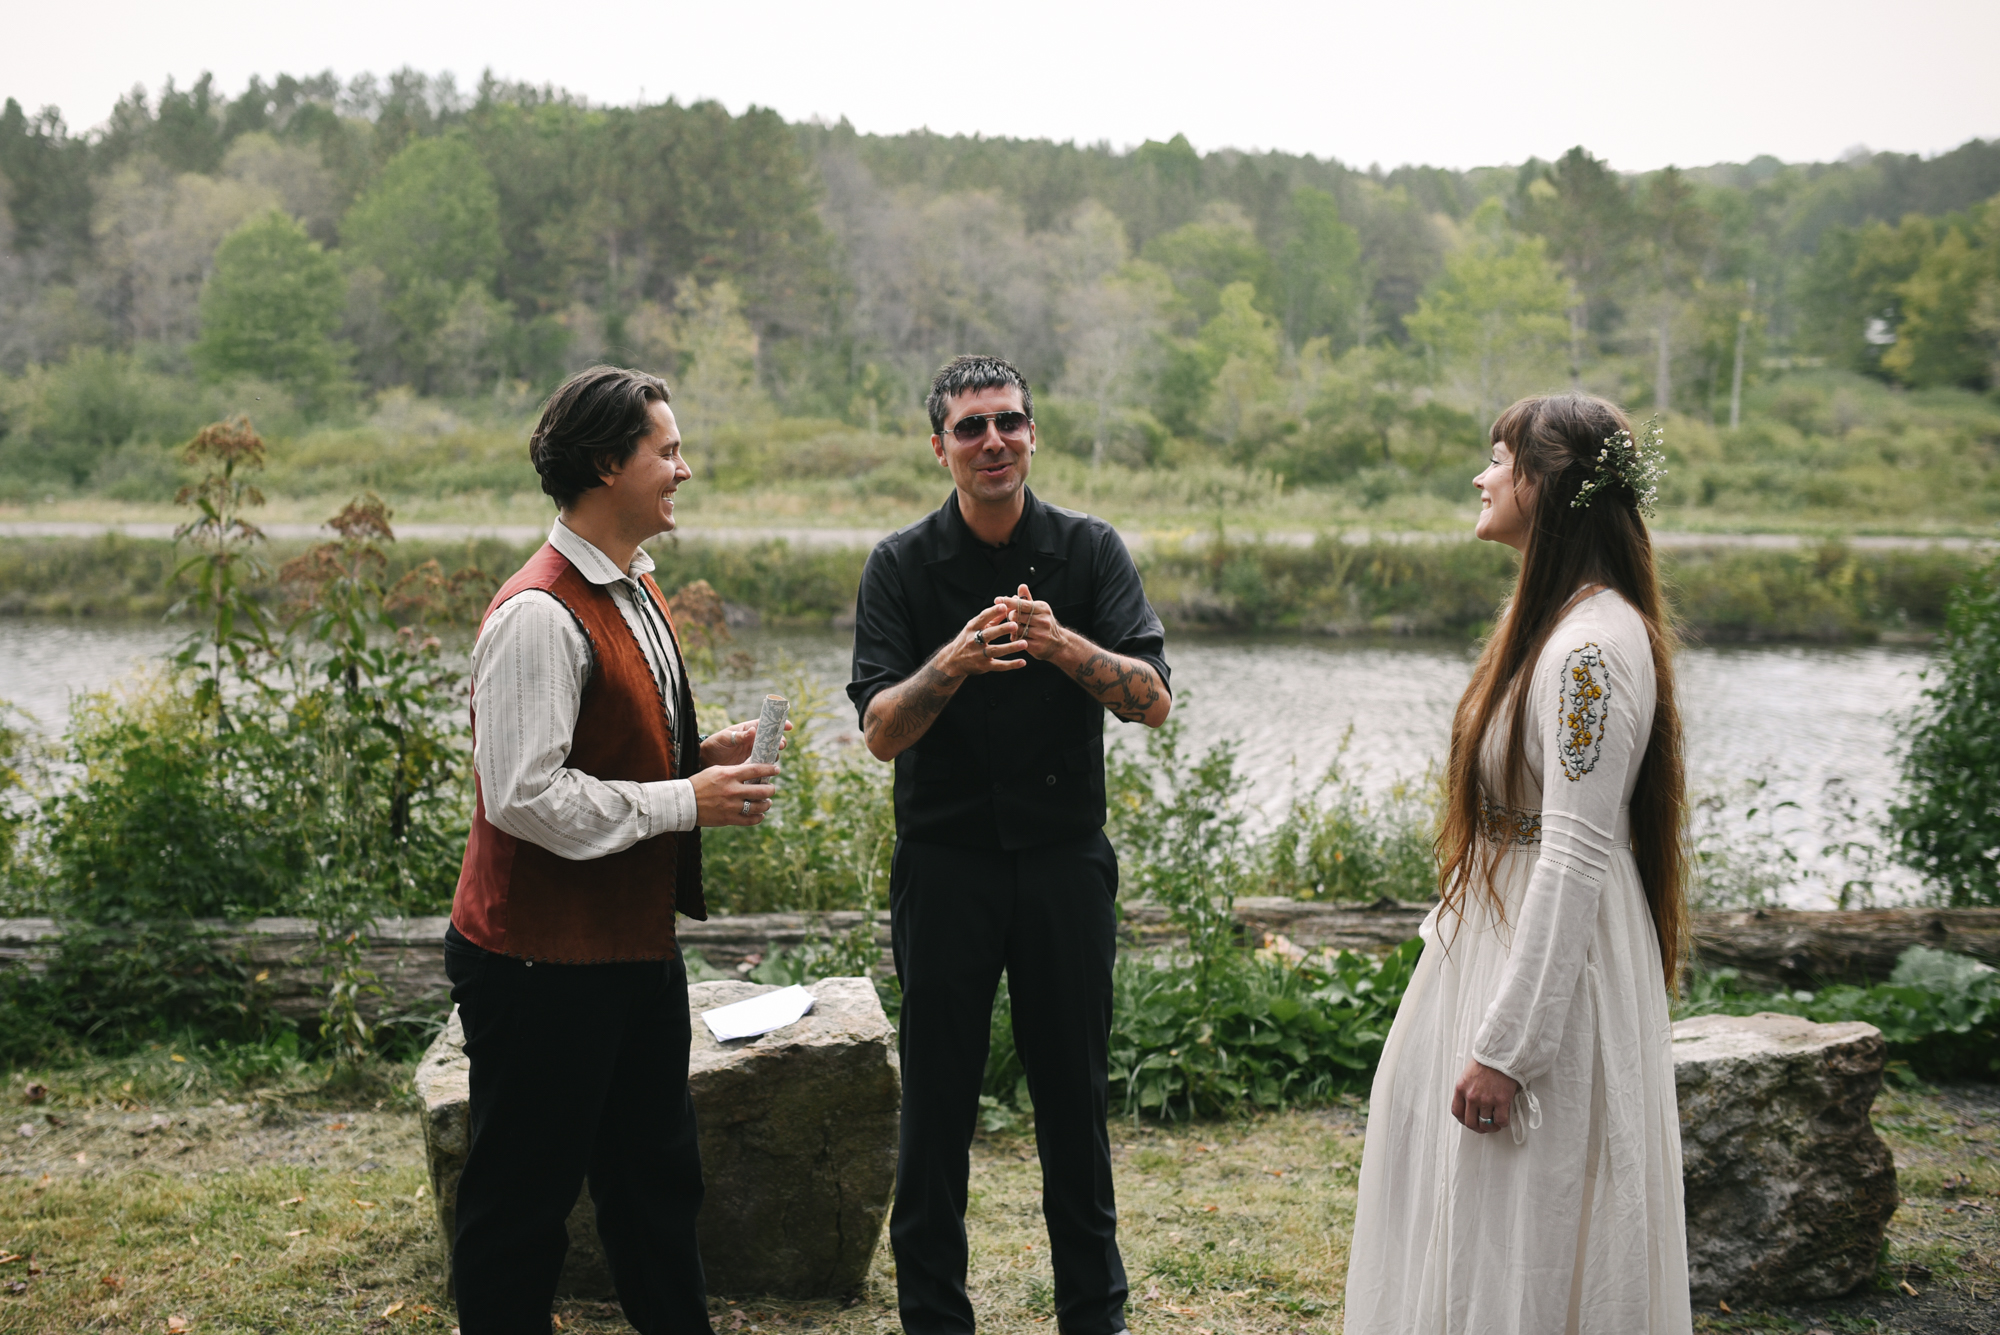 Mountain Wedding, Outdoors, Rustic, West Virginia, Maryland Wedding Photographer, DIY, Casual, bride and groom standing in front of officiant, Embroidered wedding dress